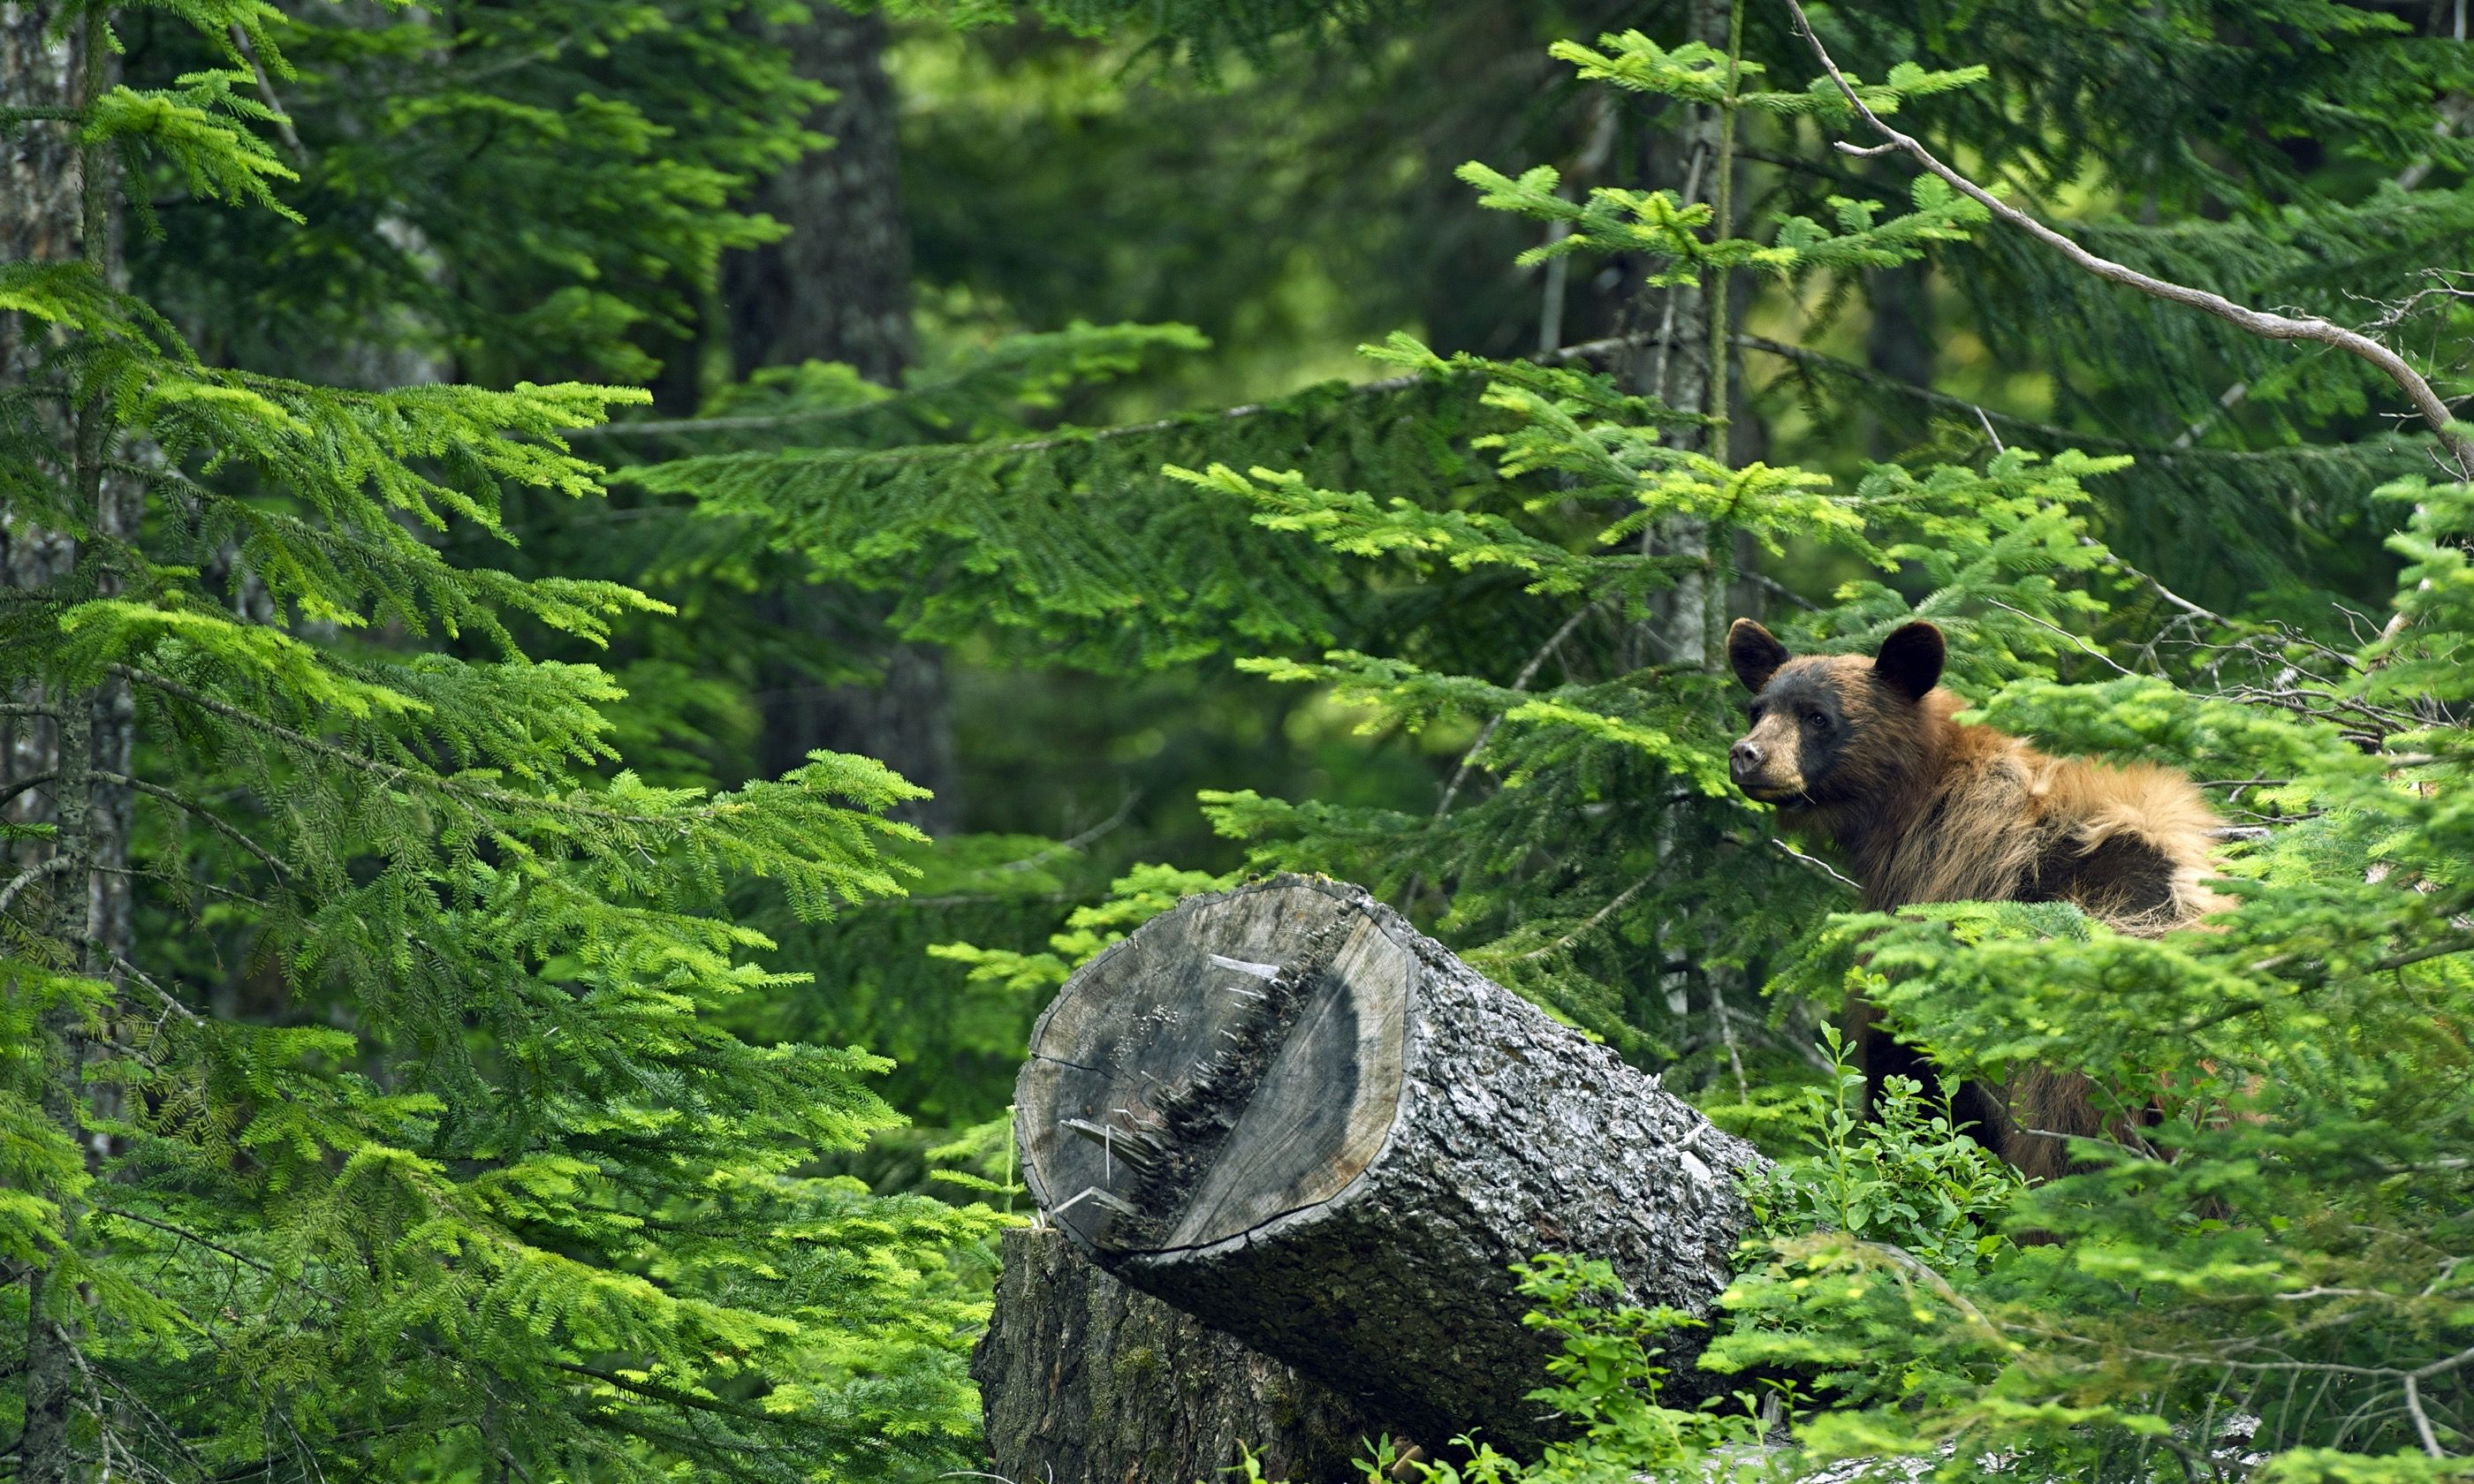 Bear in the wild in British Columbia (Shutterstock.com)